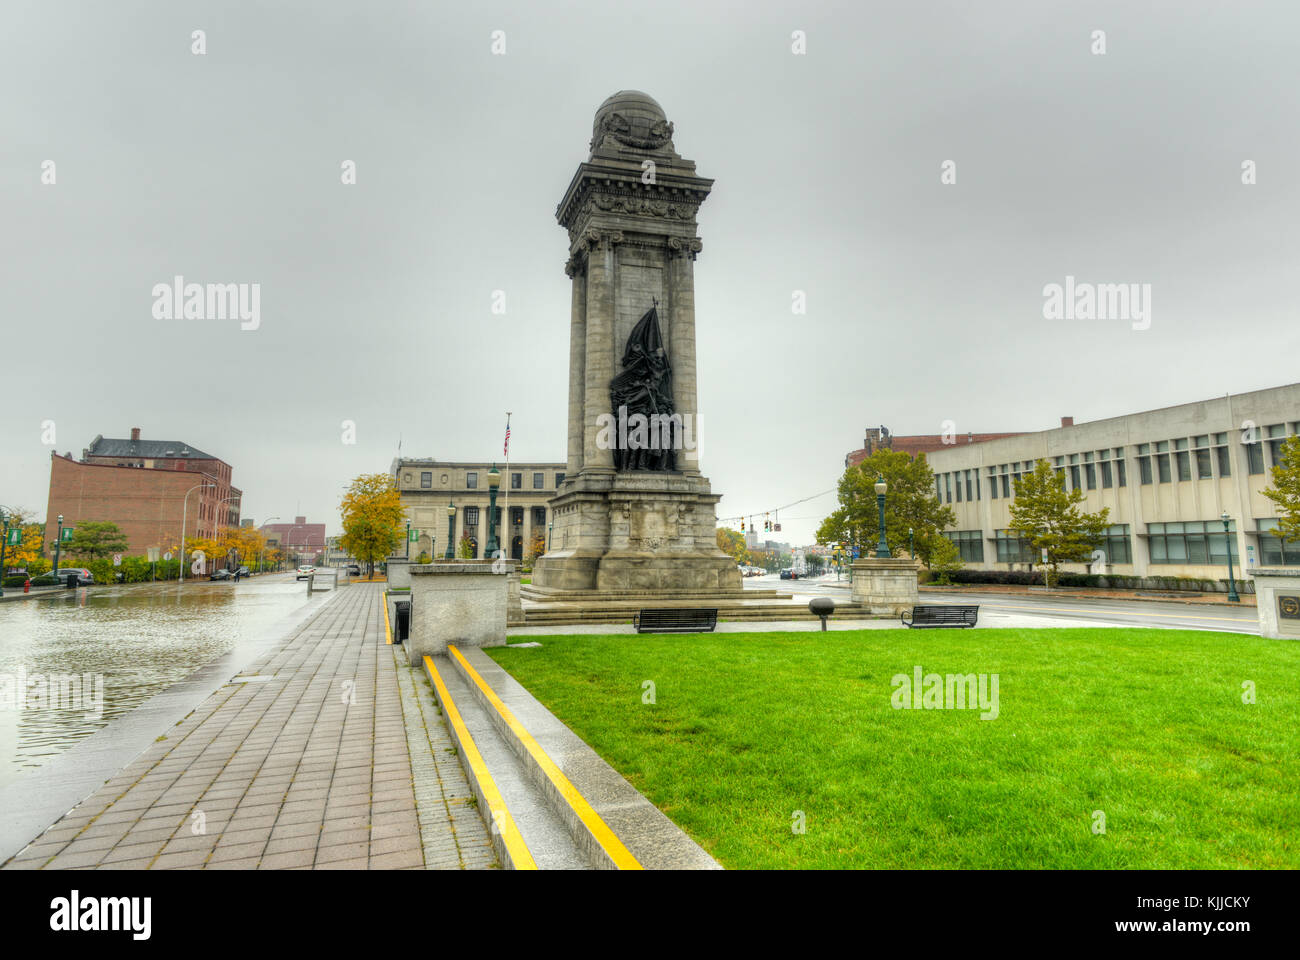 Soldiers and Sailors Monument on Clinton Square in Syracuse, NY - Stock Image